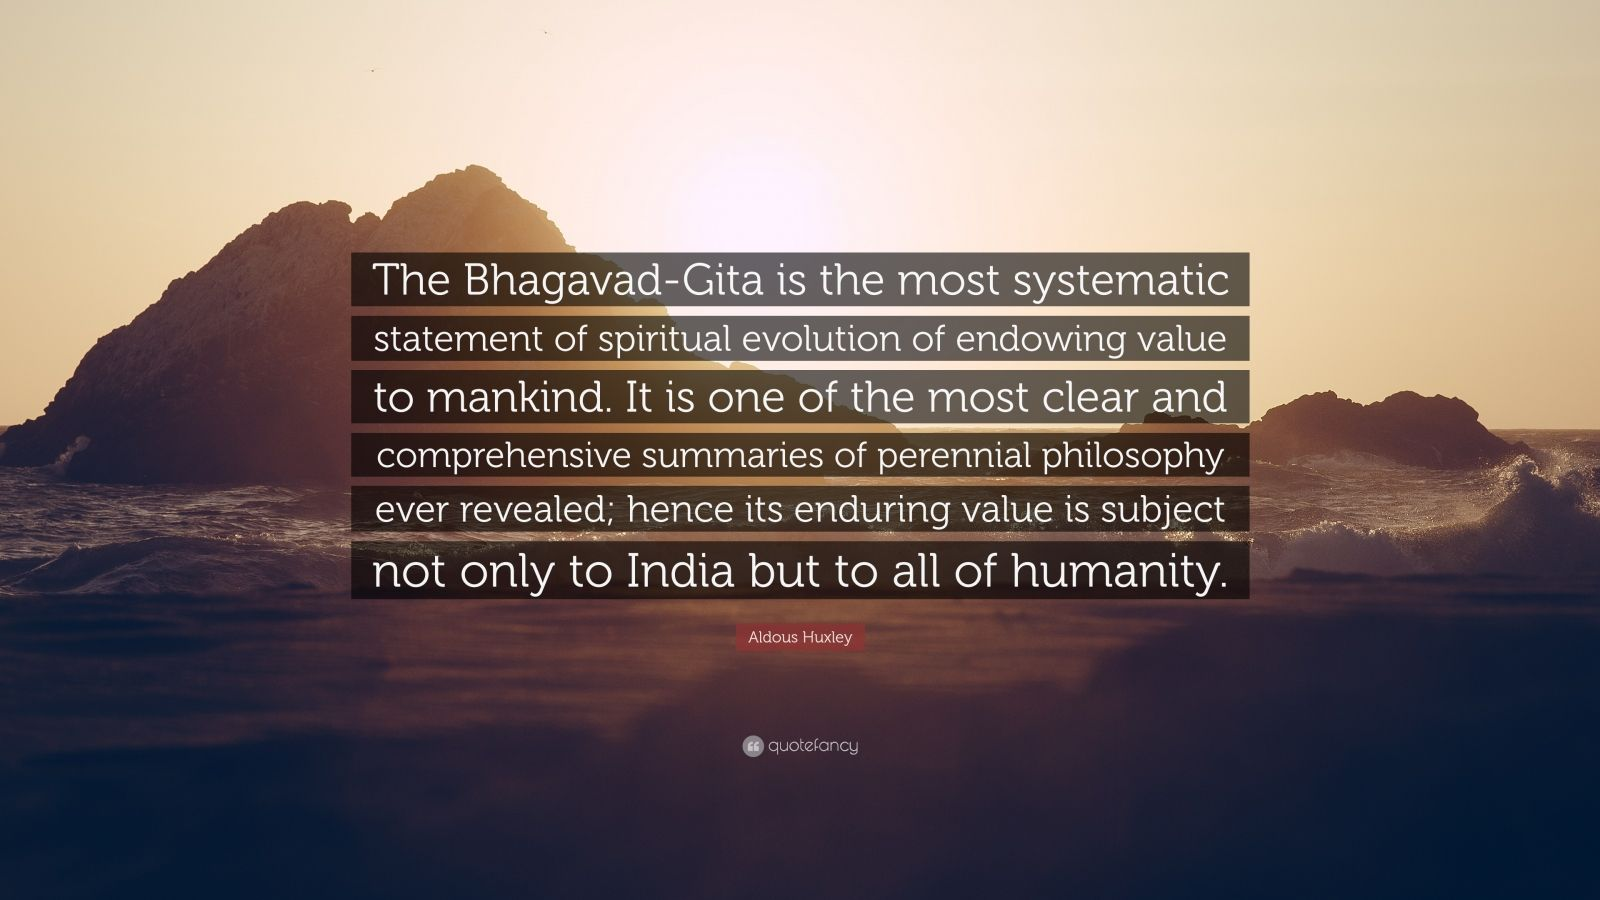 "Aldous Huxley Quote: ""The Bhagavad-Gita is the most systematic statement of spiritual evolution of endowing value to mankind. It is one of the most clear and comprehensive summaries of perennial philosophy ever revealed; hence its enduring value is subject not only to India but to all of humanity."""